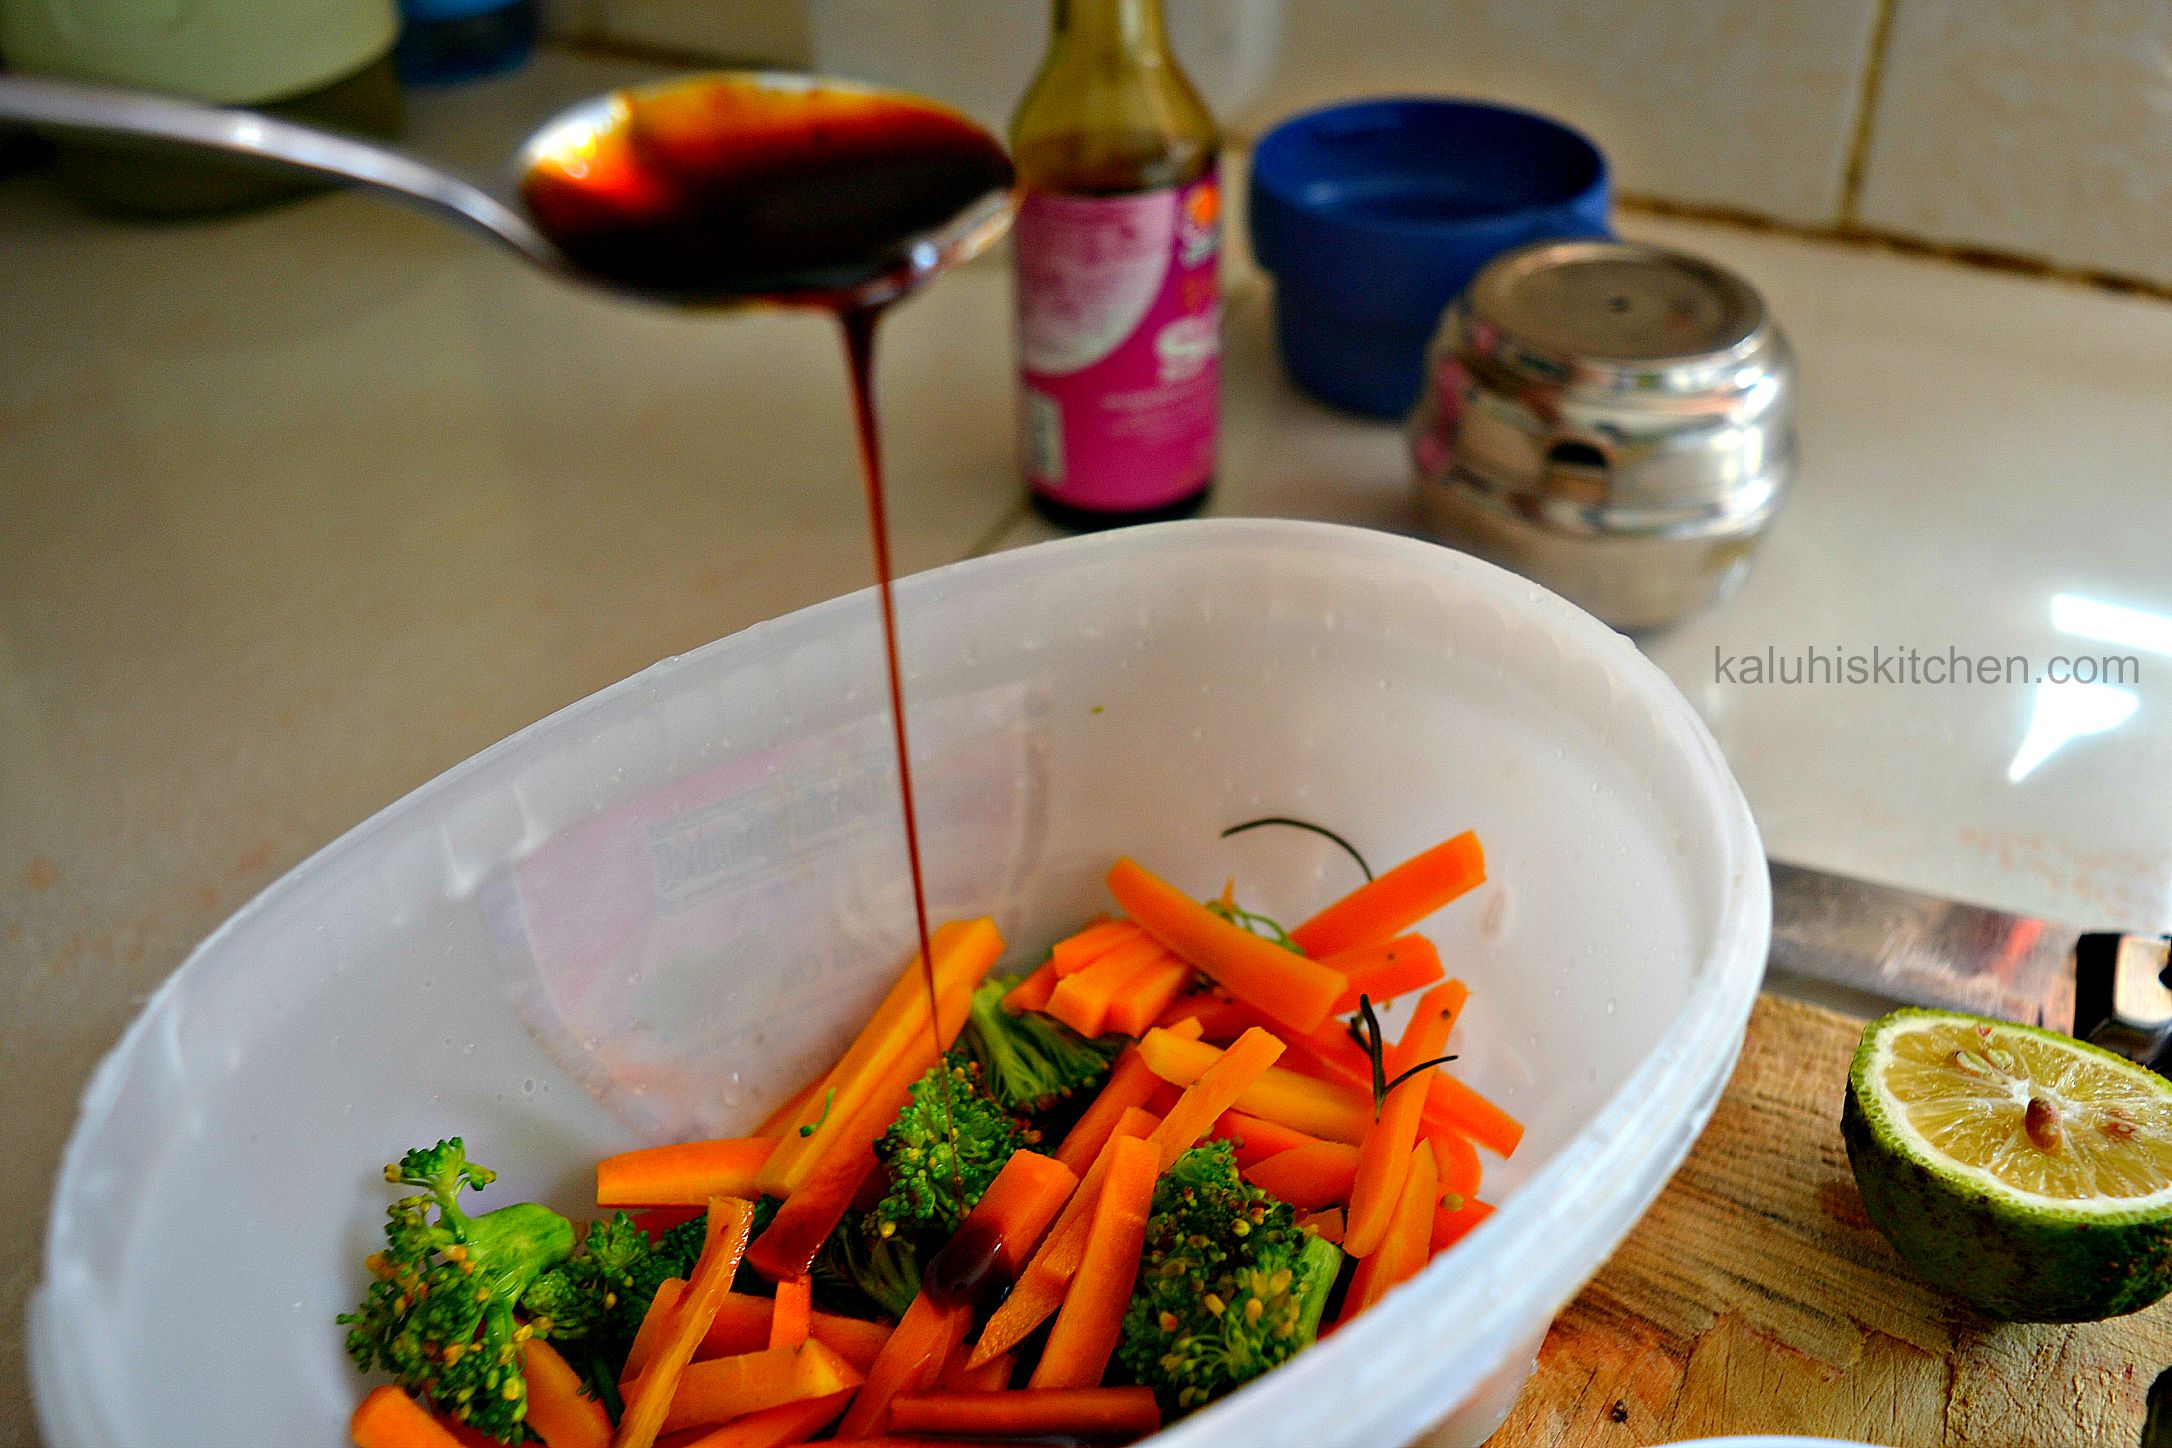 kenyan food blogs_adding the chilli caramel to the broccoli and carrots while they are warm allows them to absorb all that flavor_kaluhiskitchen.com